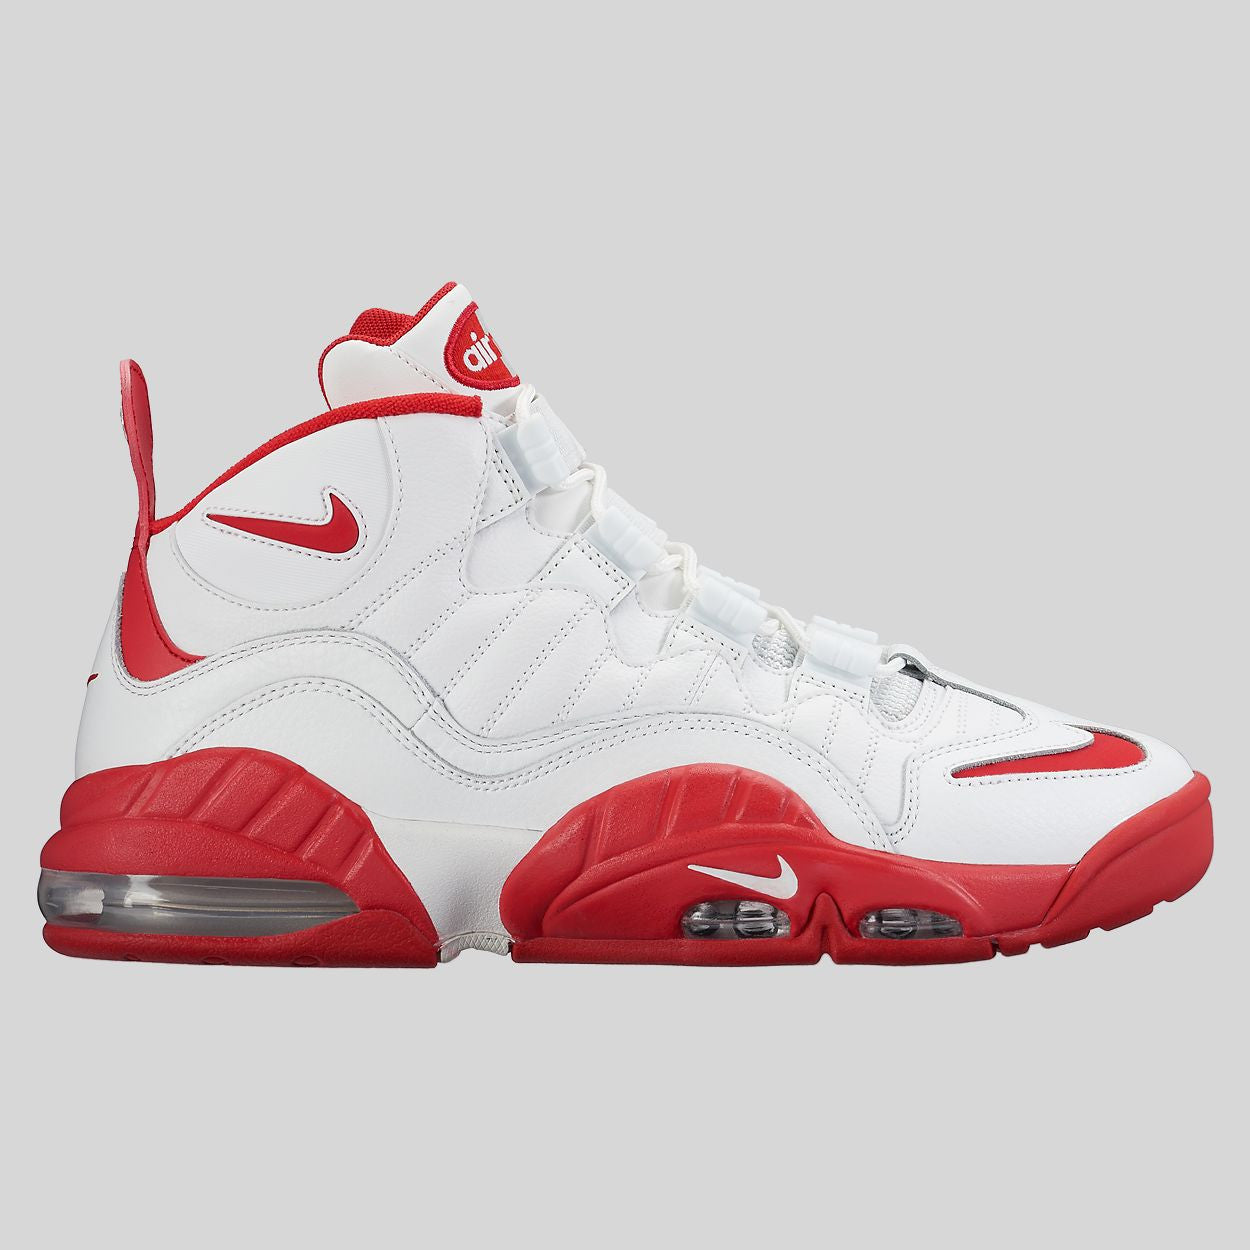 Nike Air Max Sensation Summit White / University Red